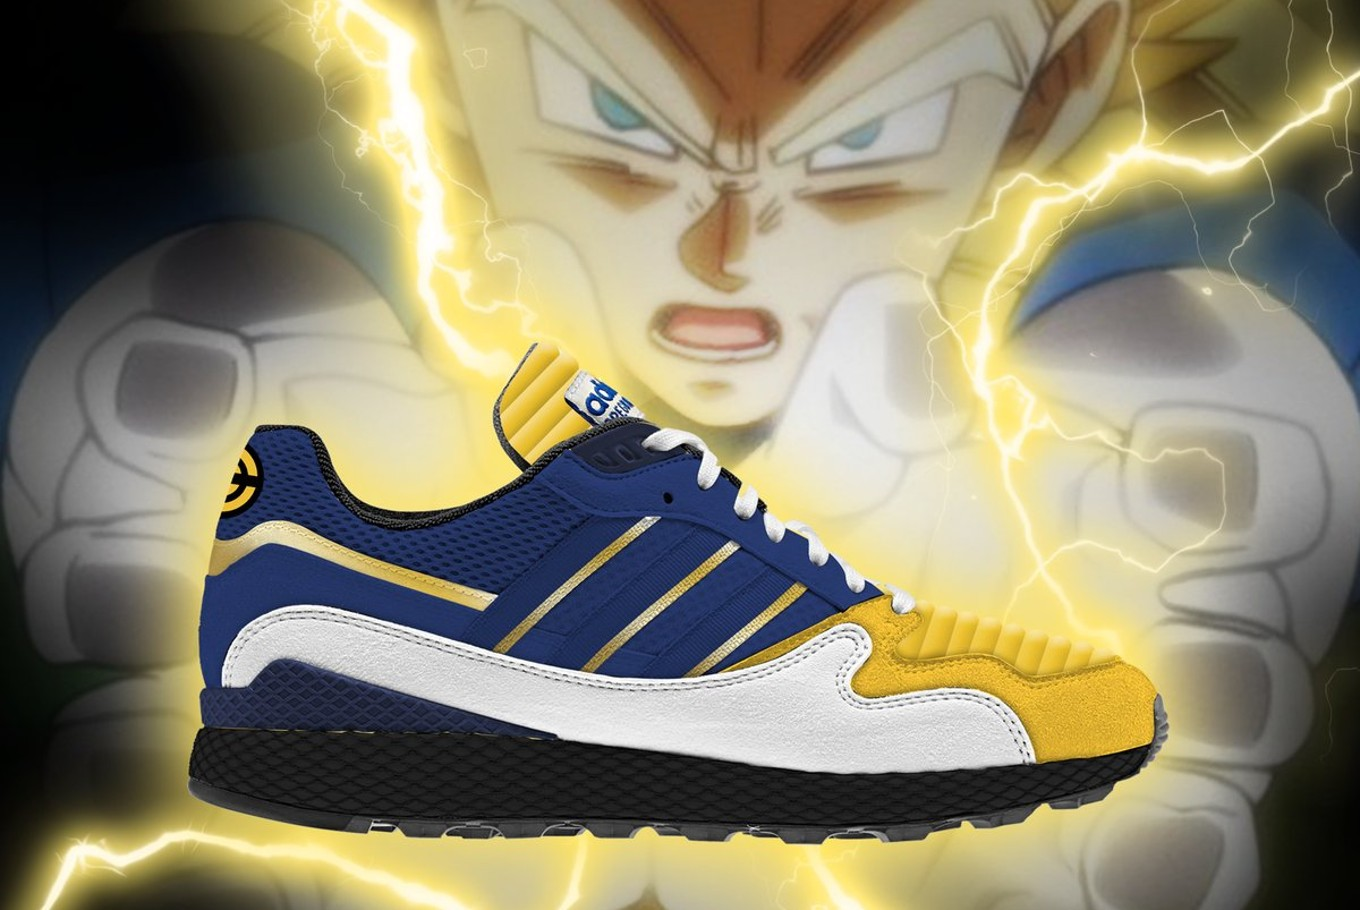 Adidas to launch 'Dragon Ball Z' sneakers this year